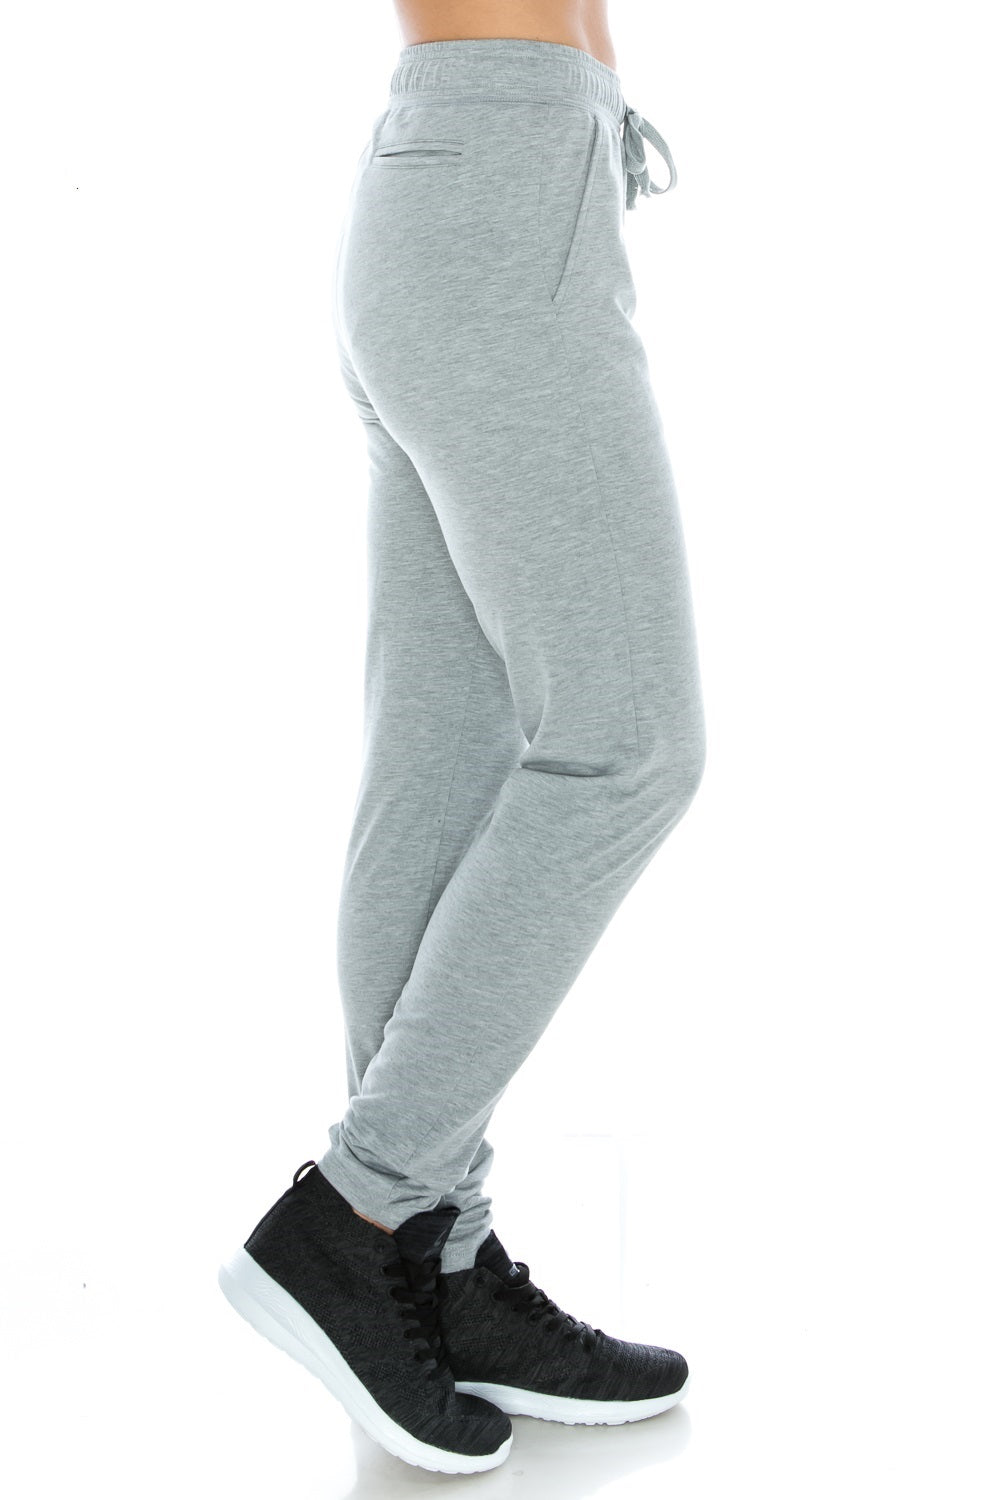 Gray Fitted Unisex Workout Sweatpants - Poplooks